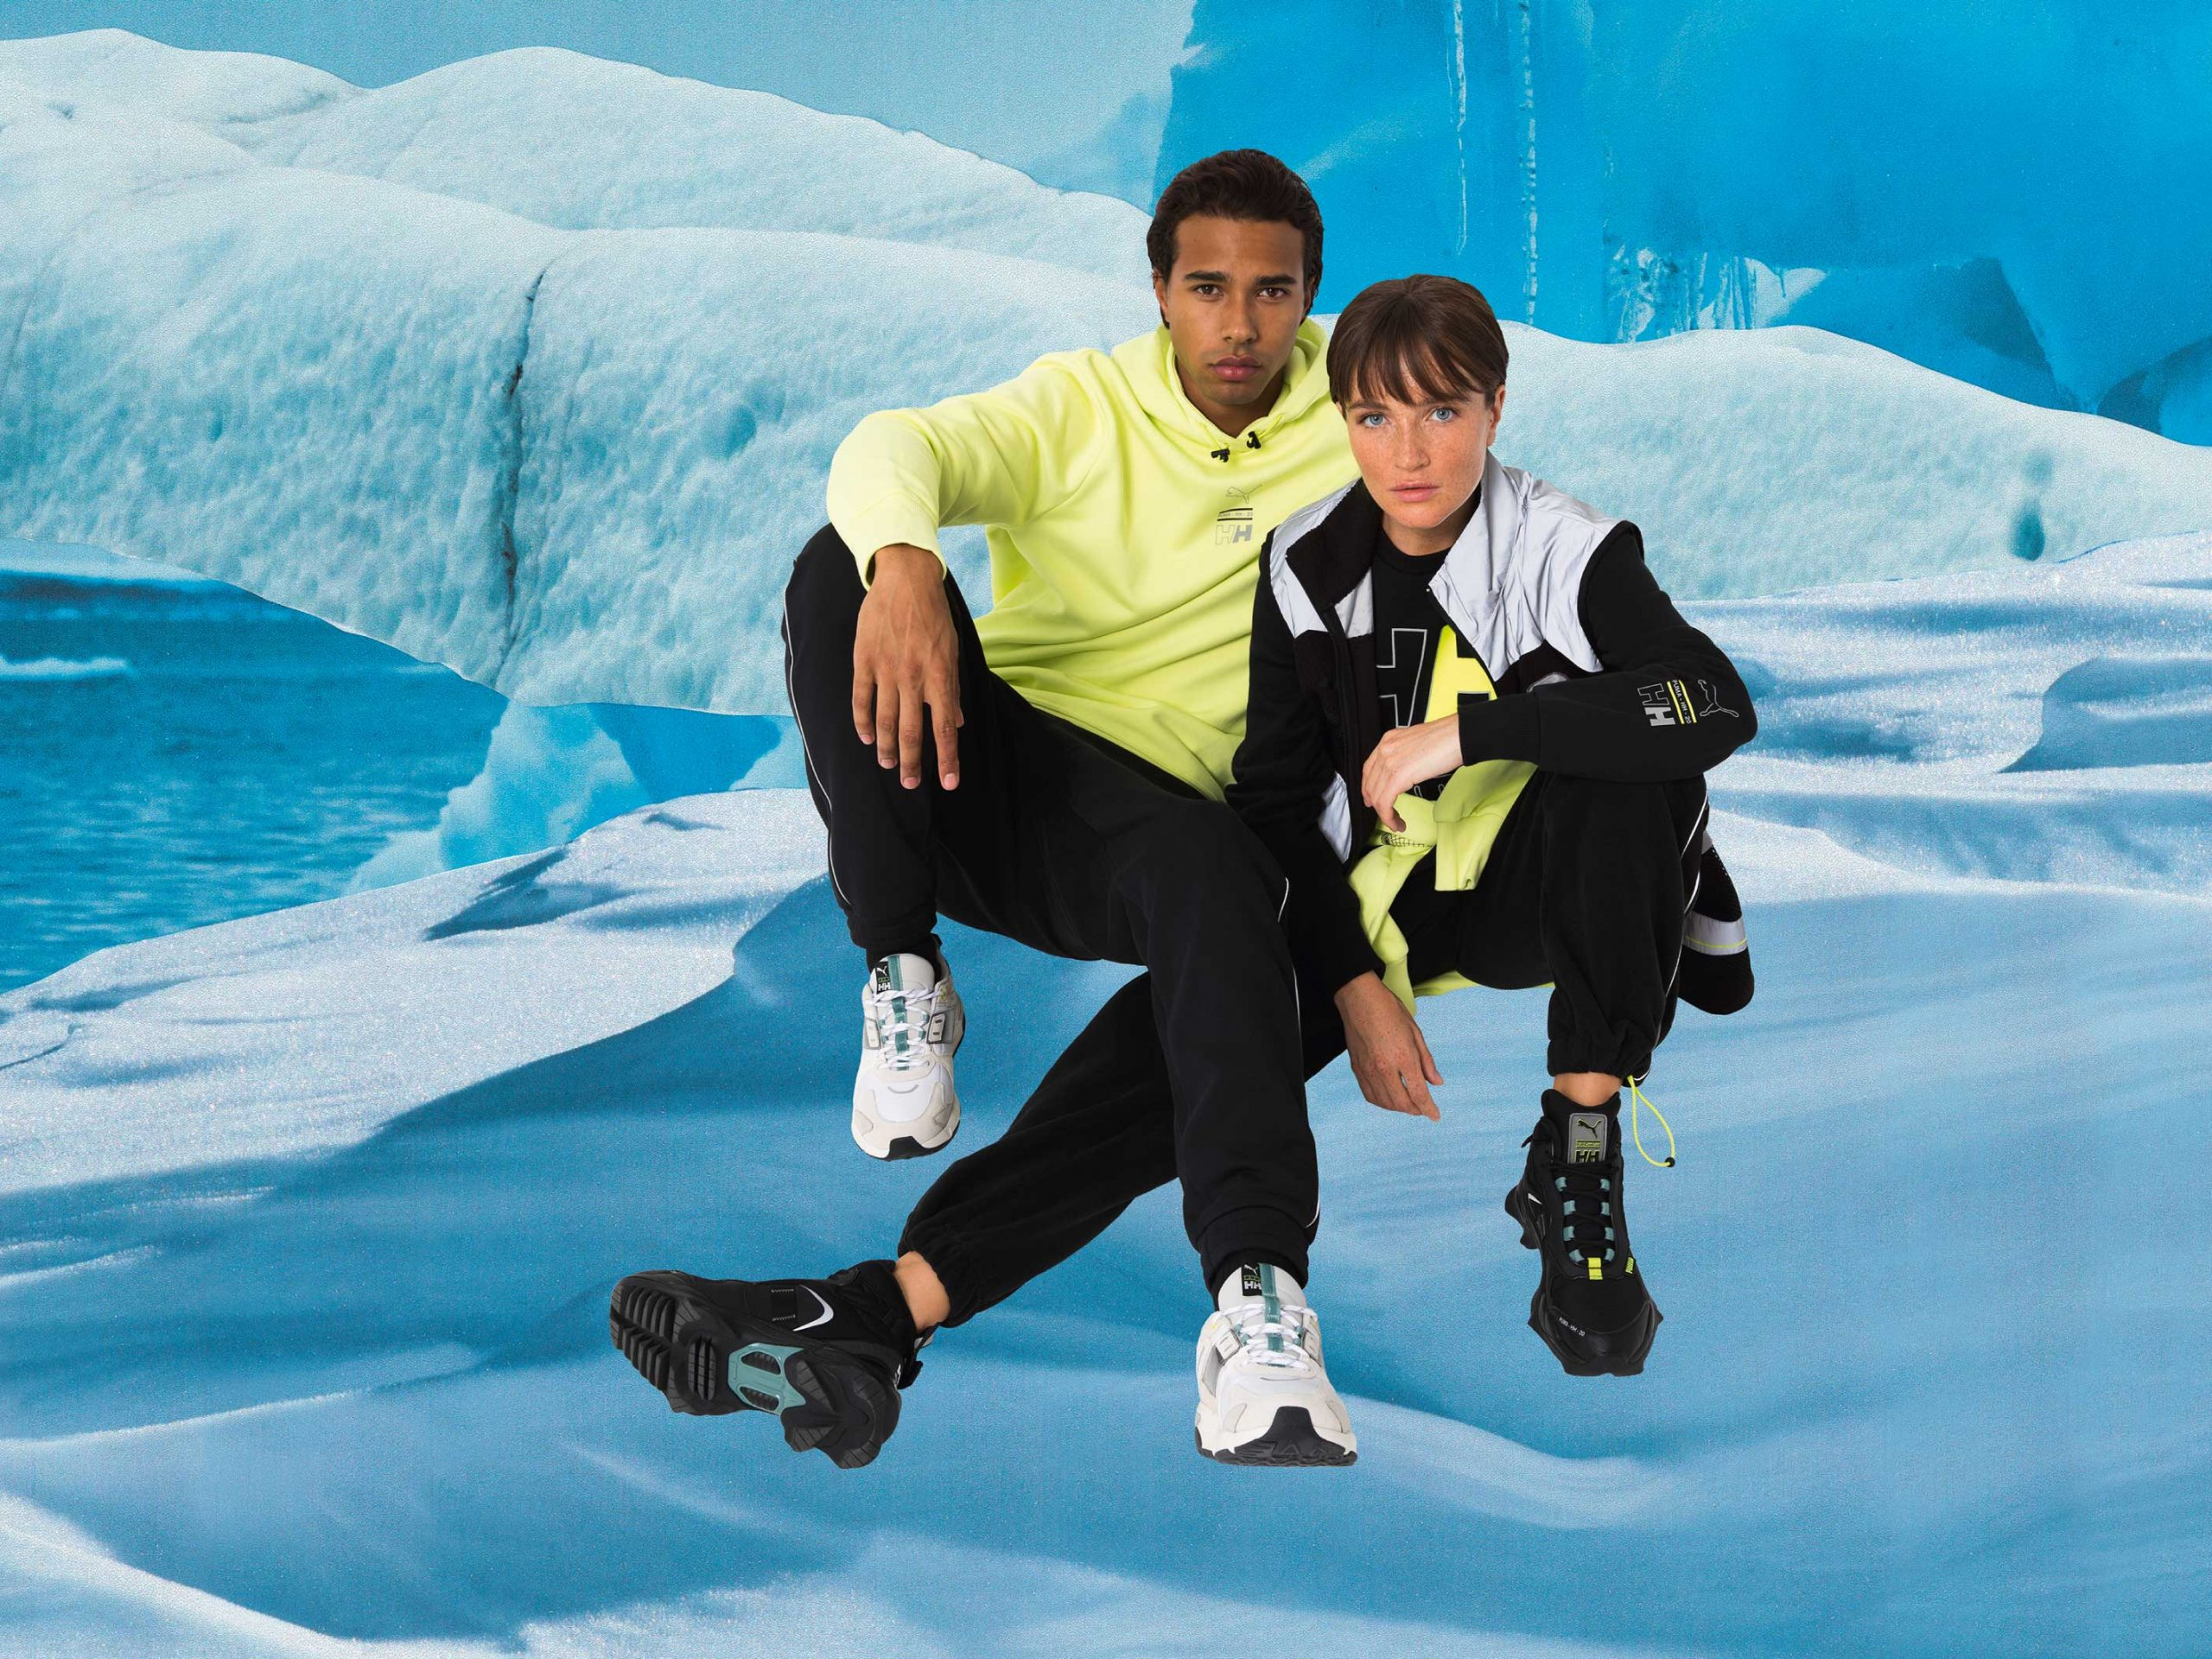 20AW_In-Store_SP_SELECT_Helly-Hansen-Q4_CubeSetLightbox-CoupleSitting_1000x750mm